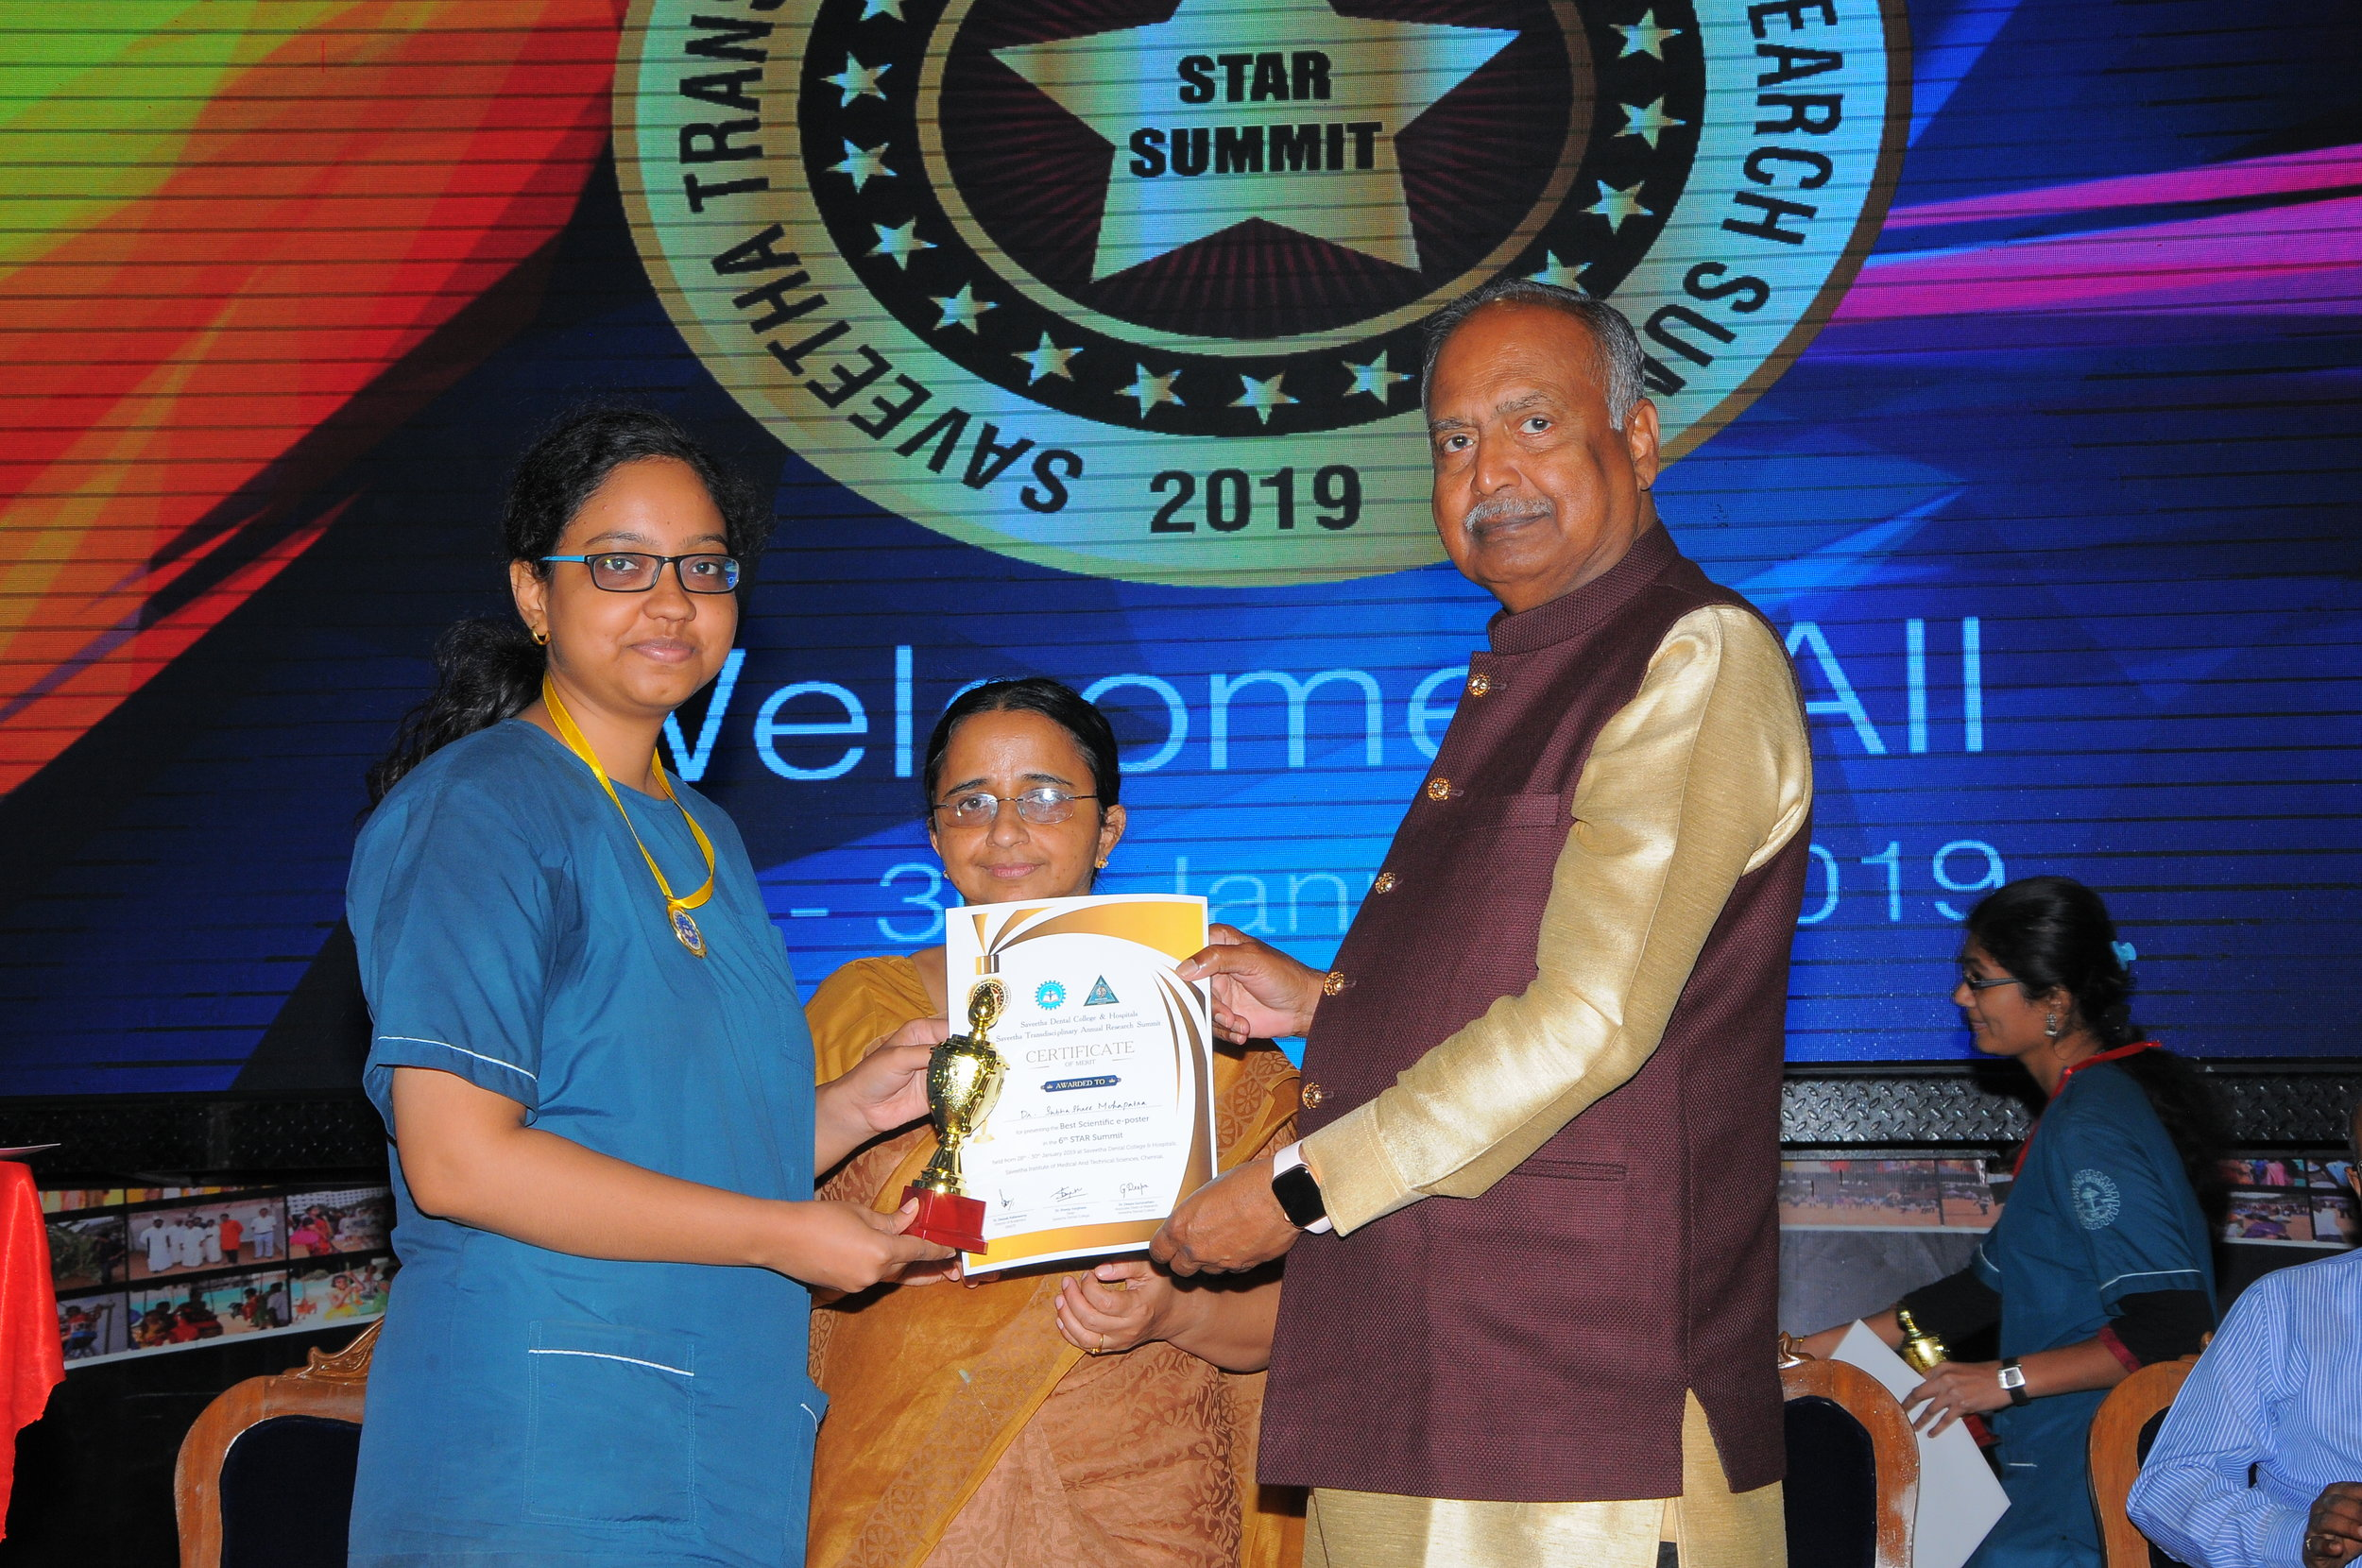 Best Paper - I PlaceDr.Subhashree .M - II Yr Post GraduateTitle: Assessment of micro hardness of enamel caries like lesions after treatment with novomin, biomin and remin pro containing tooth pastes